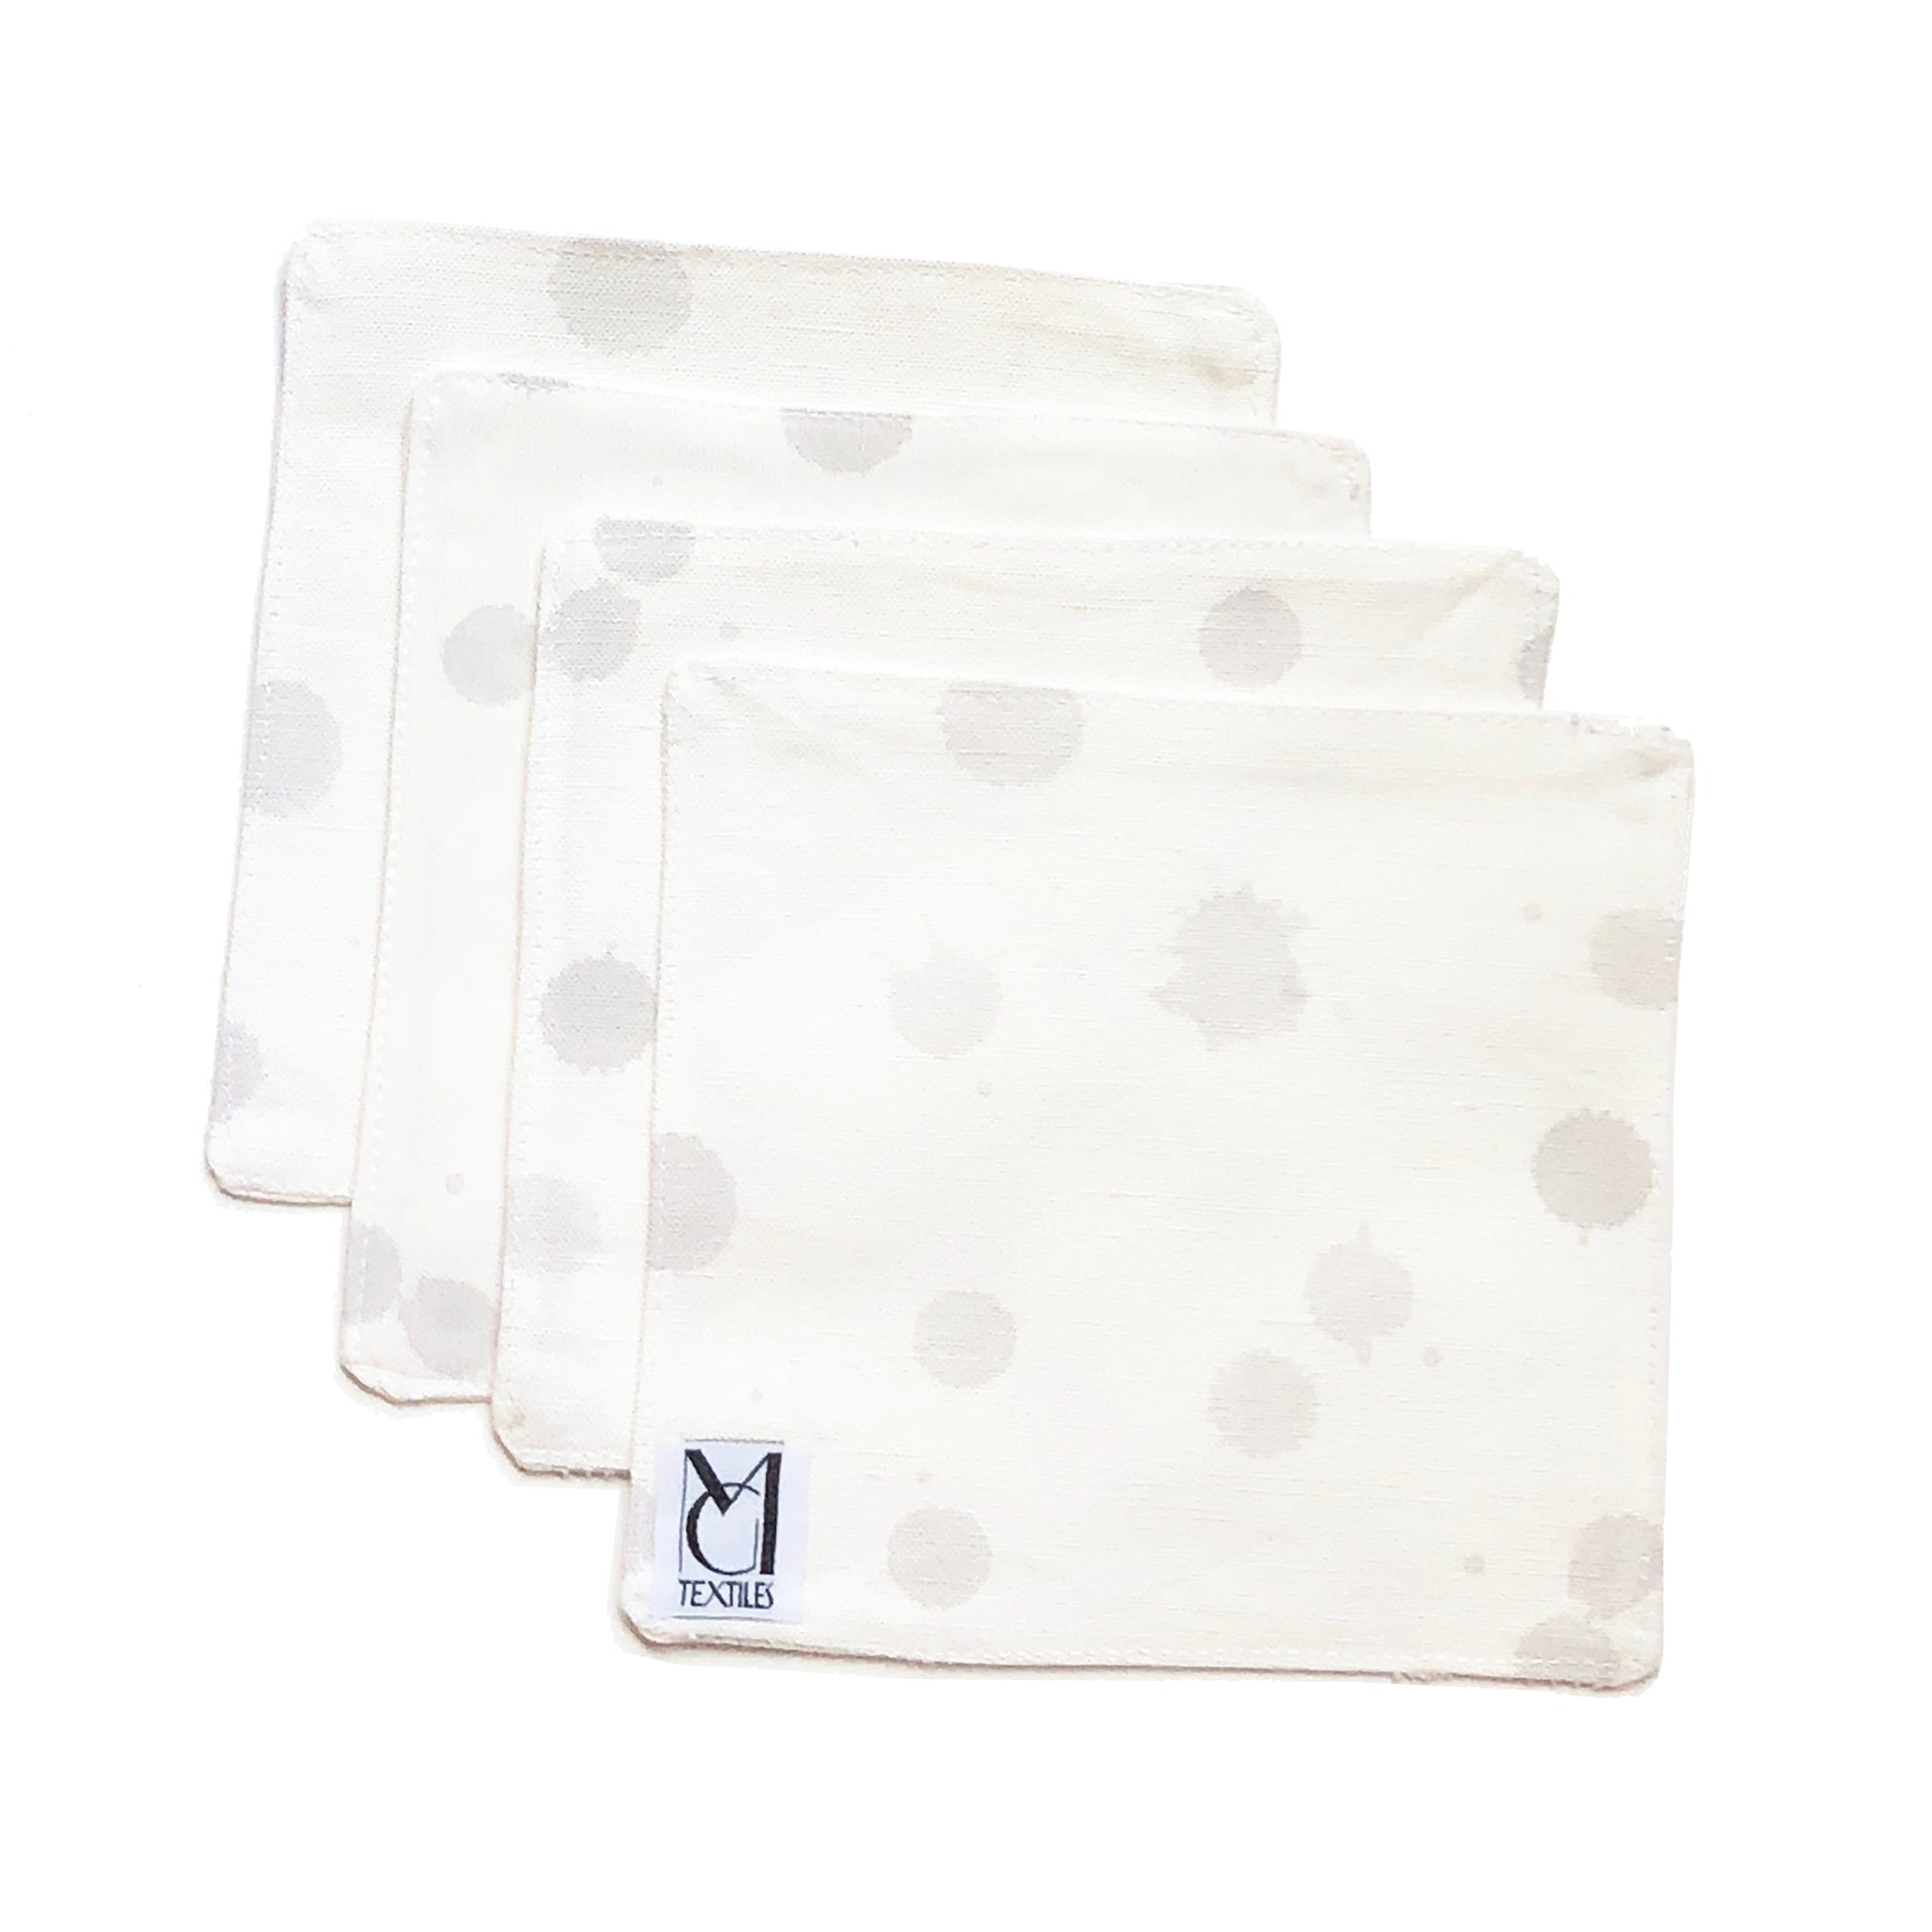 Luna Sterling Cocktail Napkin Set